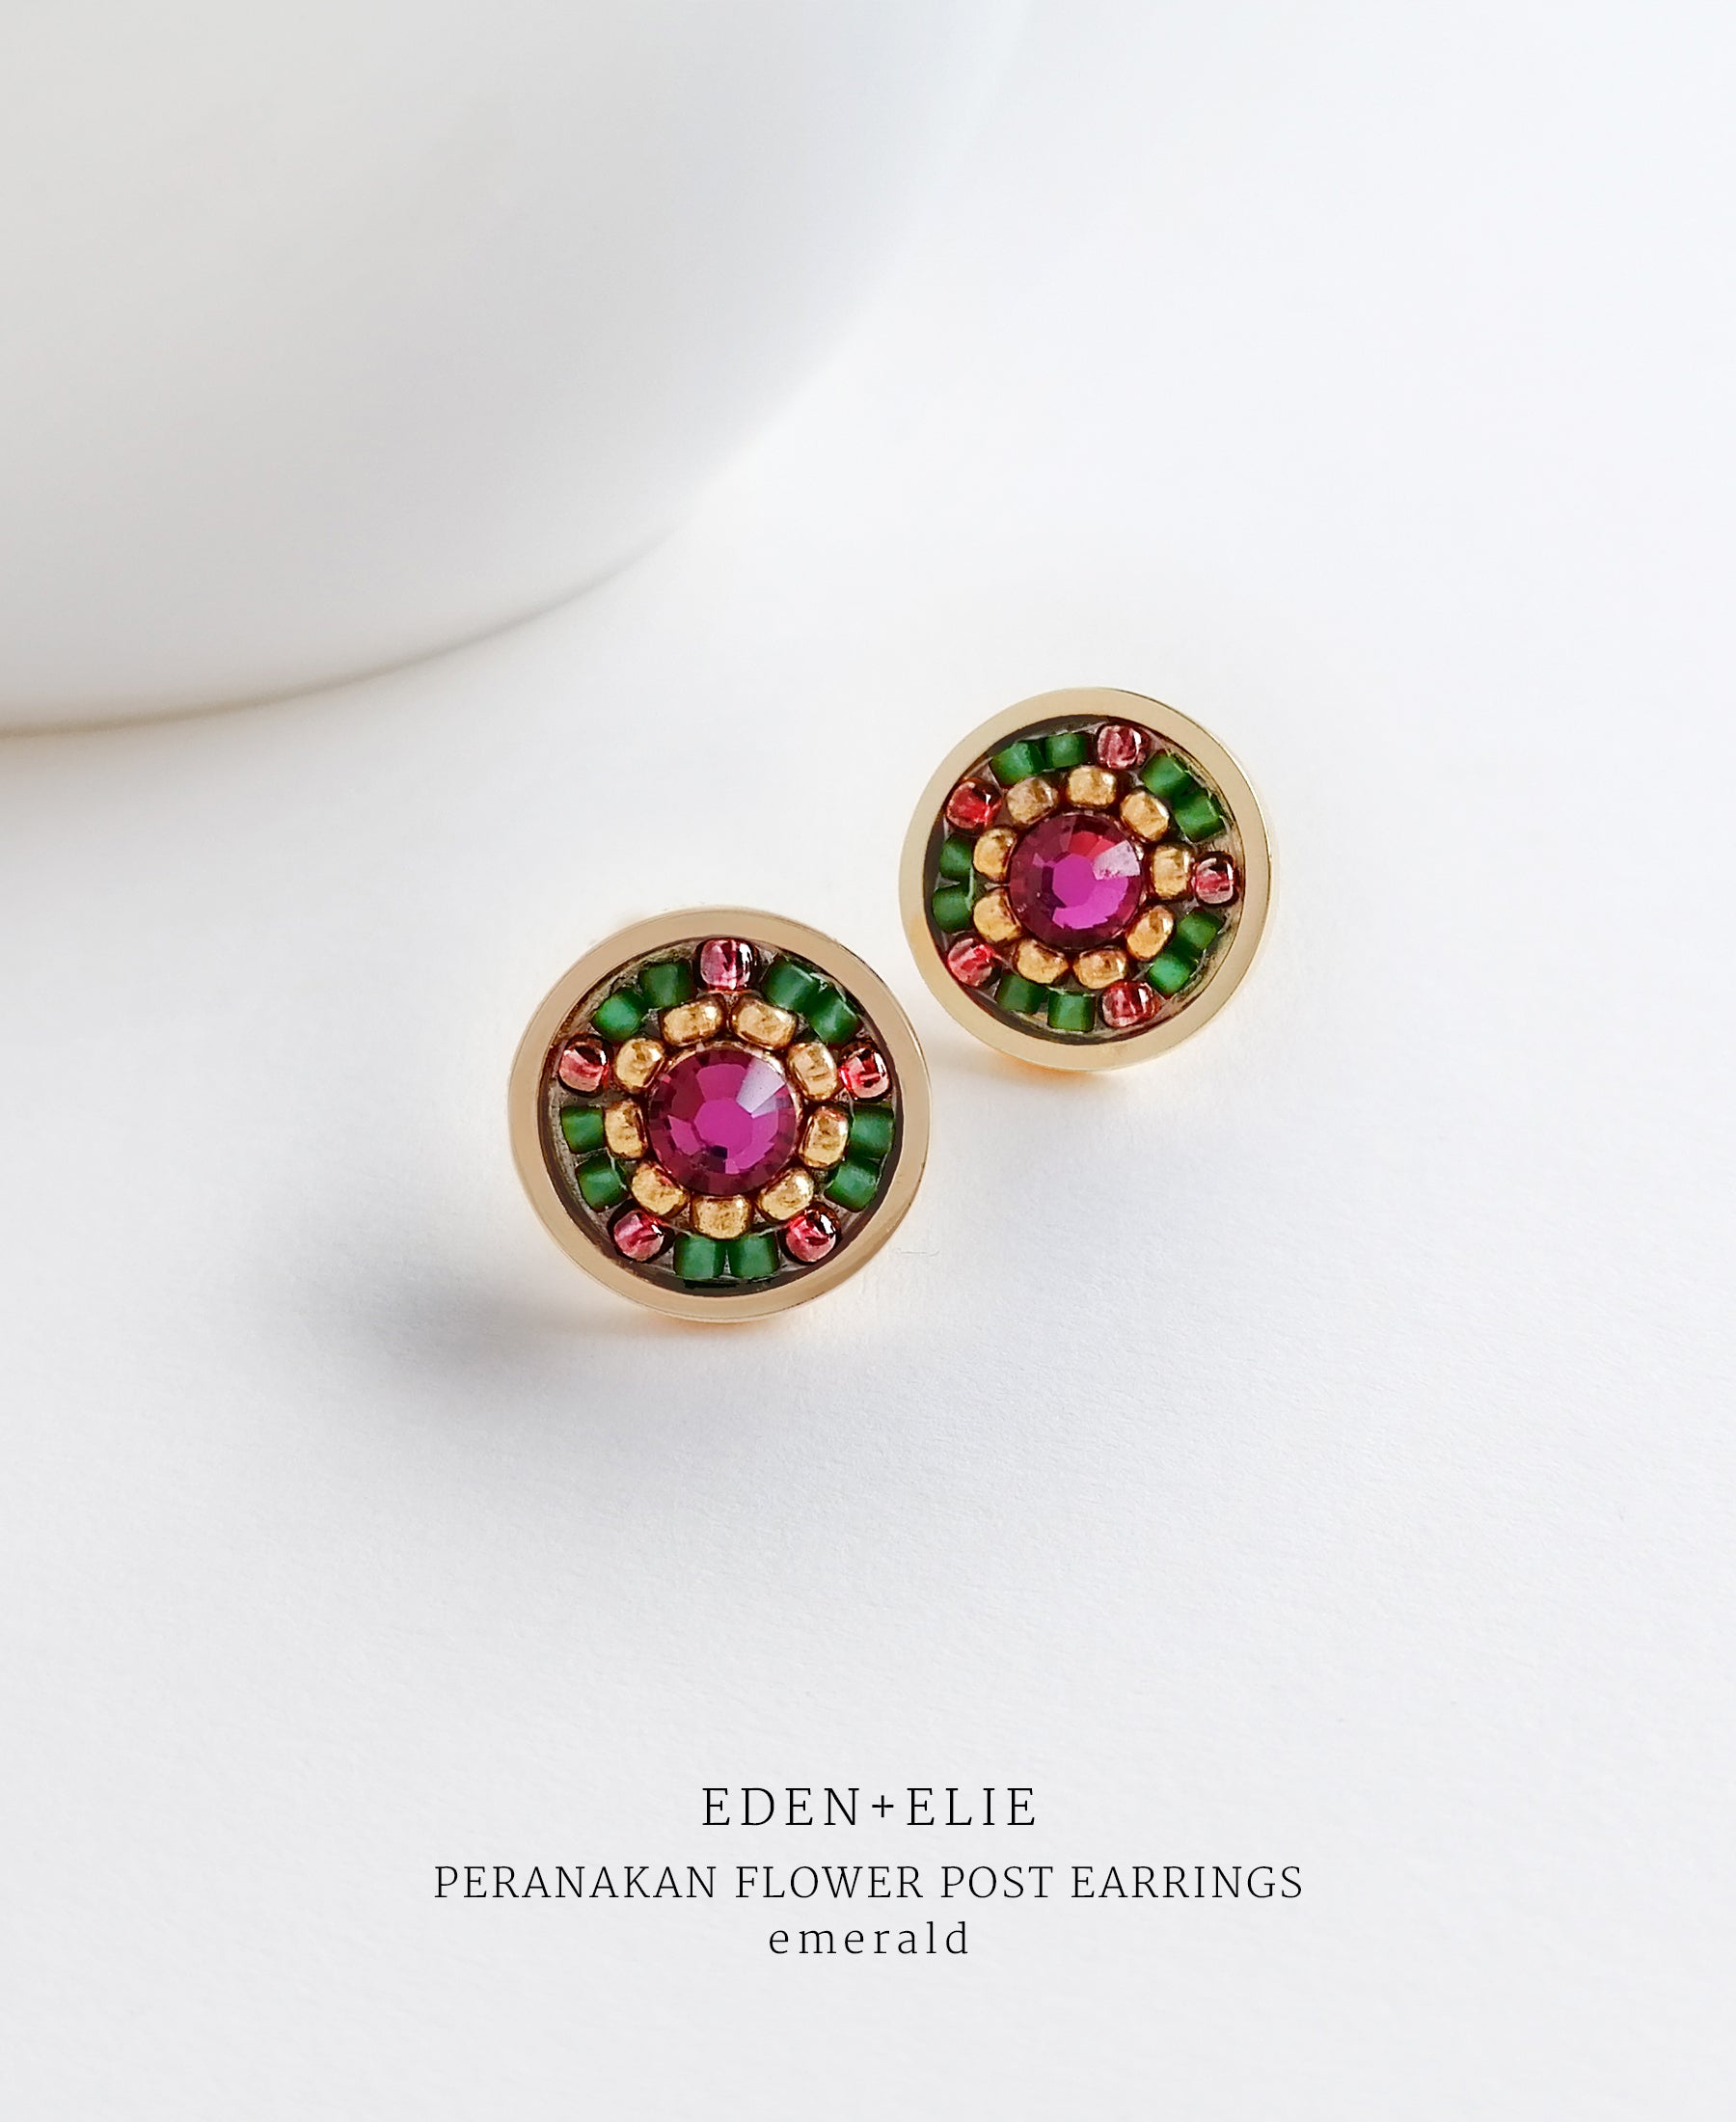 EDEN + ELIE Modern Peranakan flower stud earrings - emerald